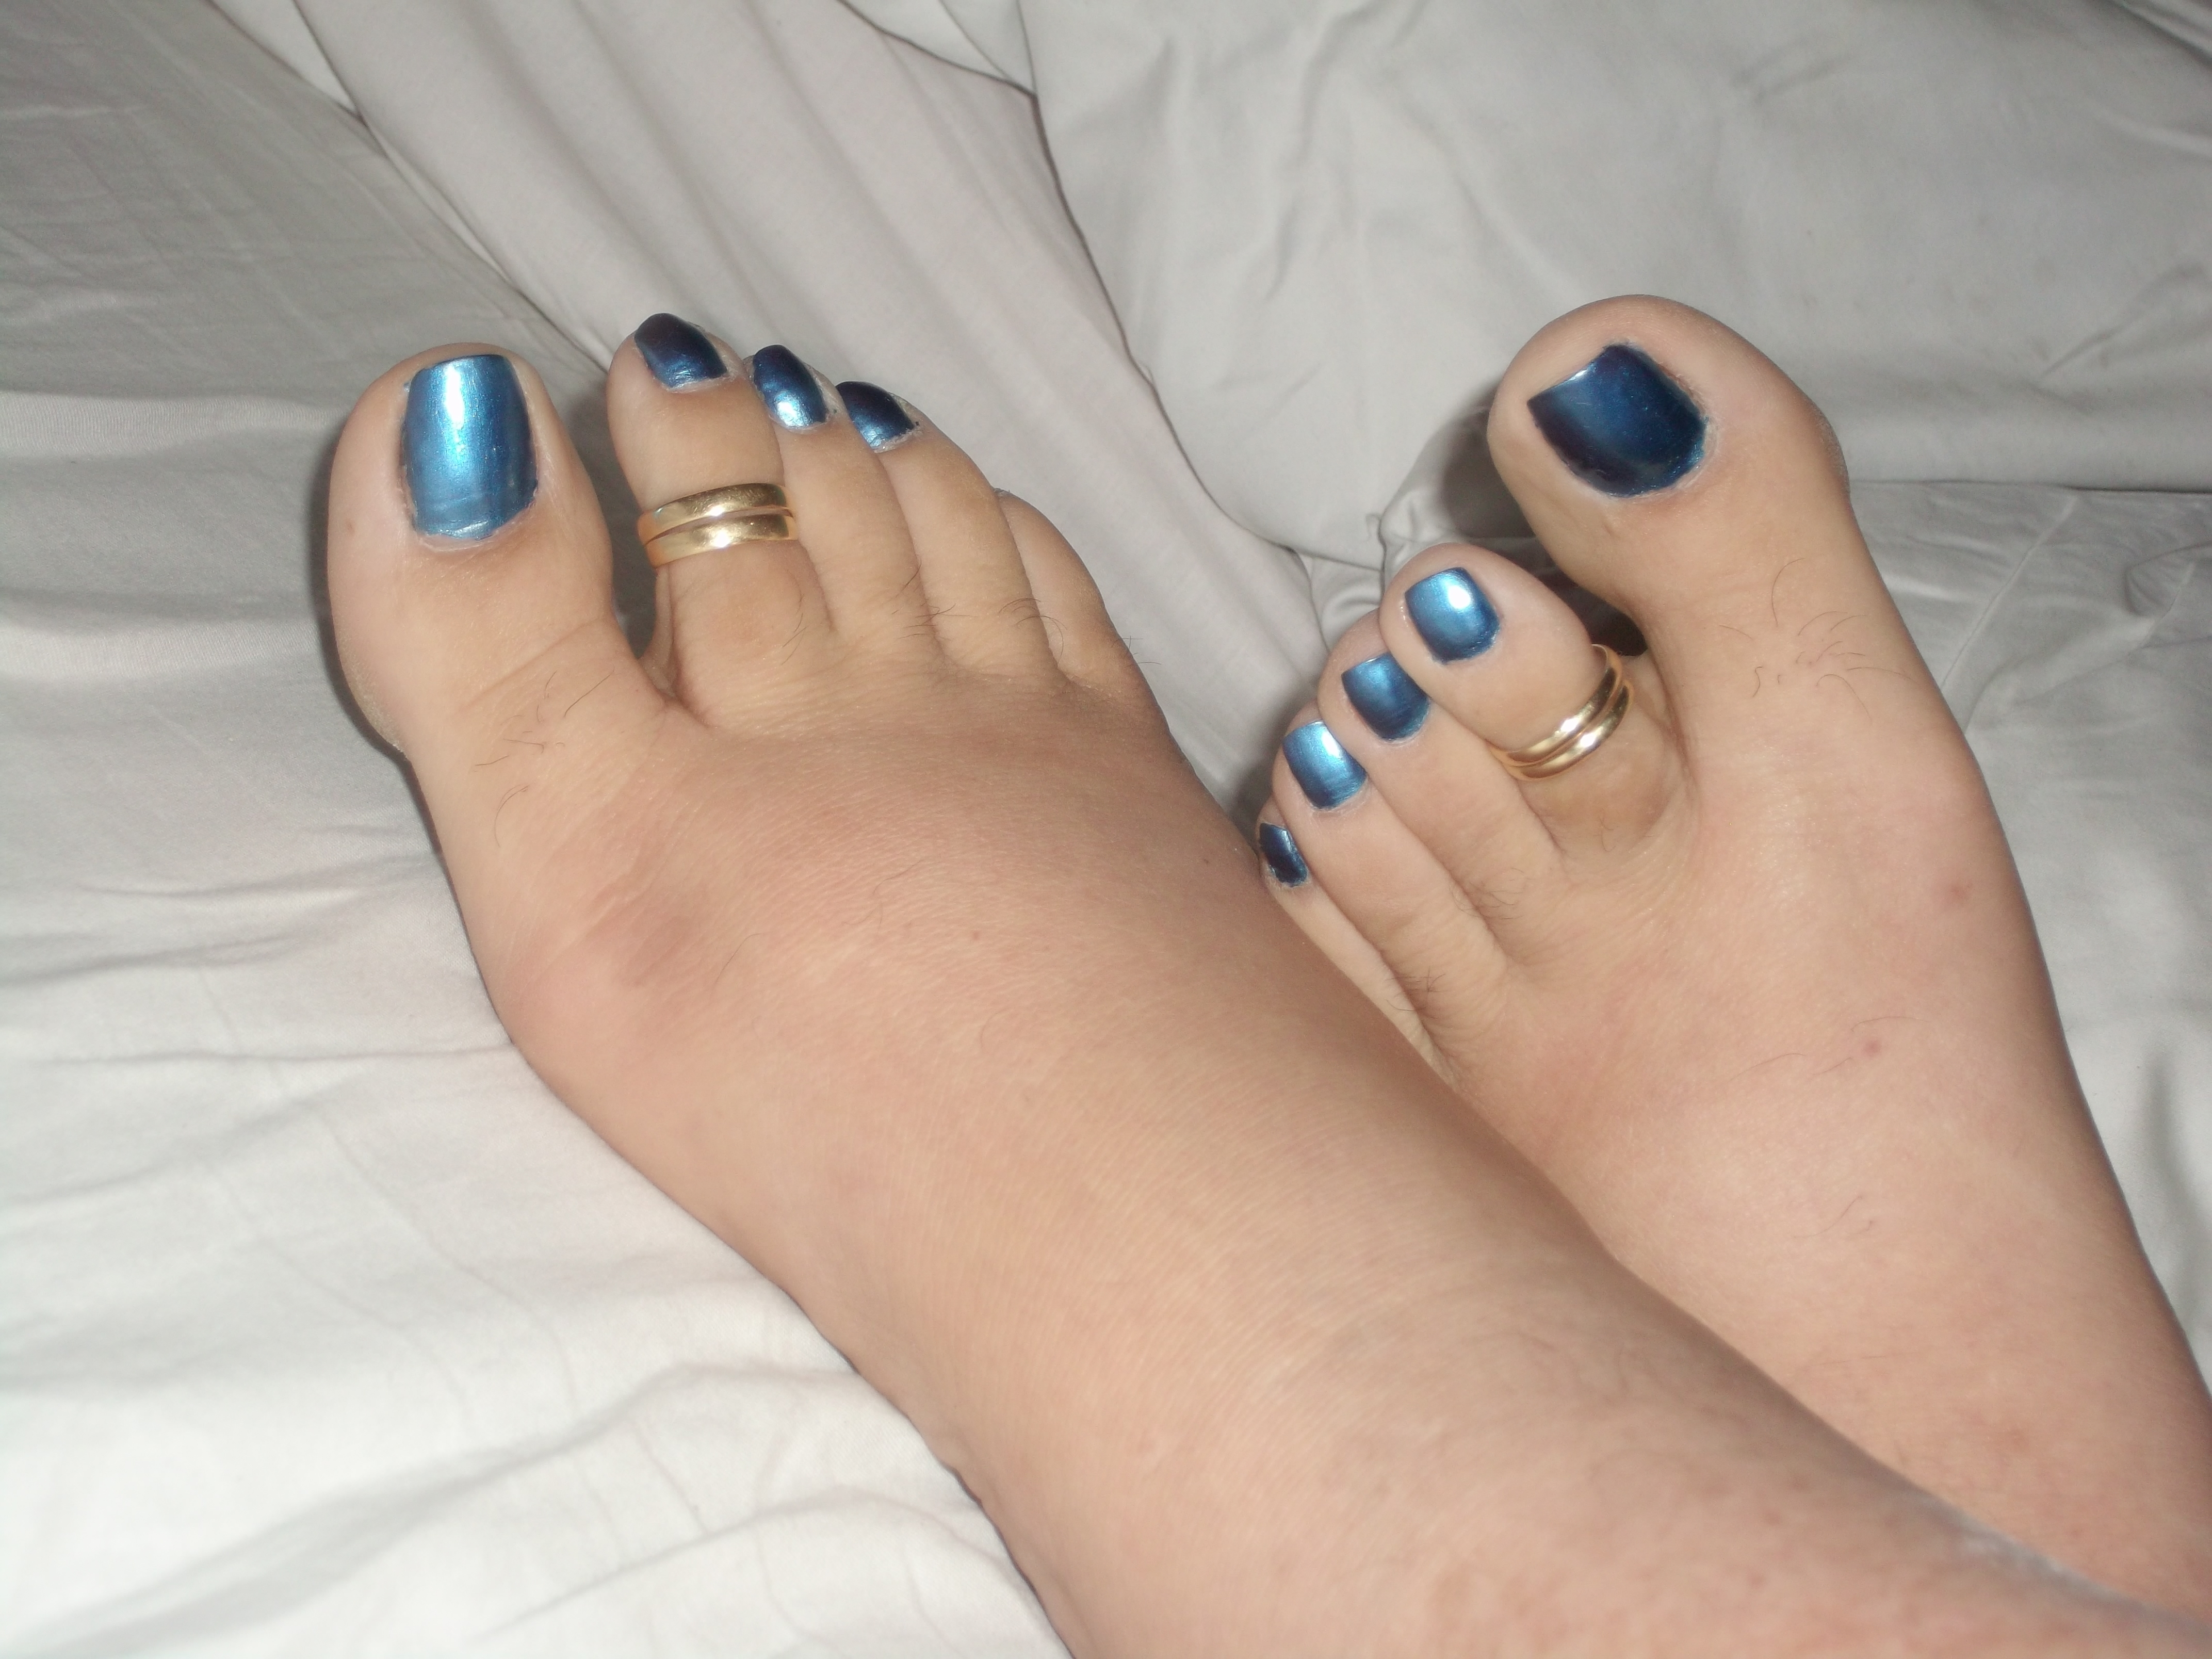 Wallpaper : Rings, Feet, Turquoise, Polish, Toes, Long, Hand, Foot Pertaining To Newest Male Toe Rings (View 15 of 15)